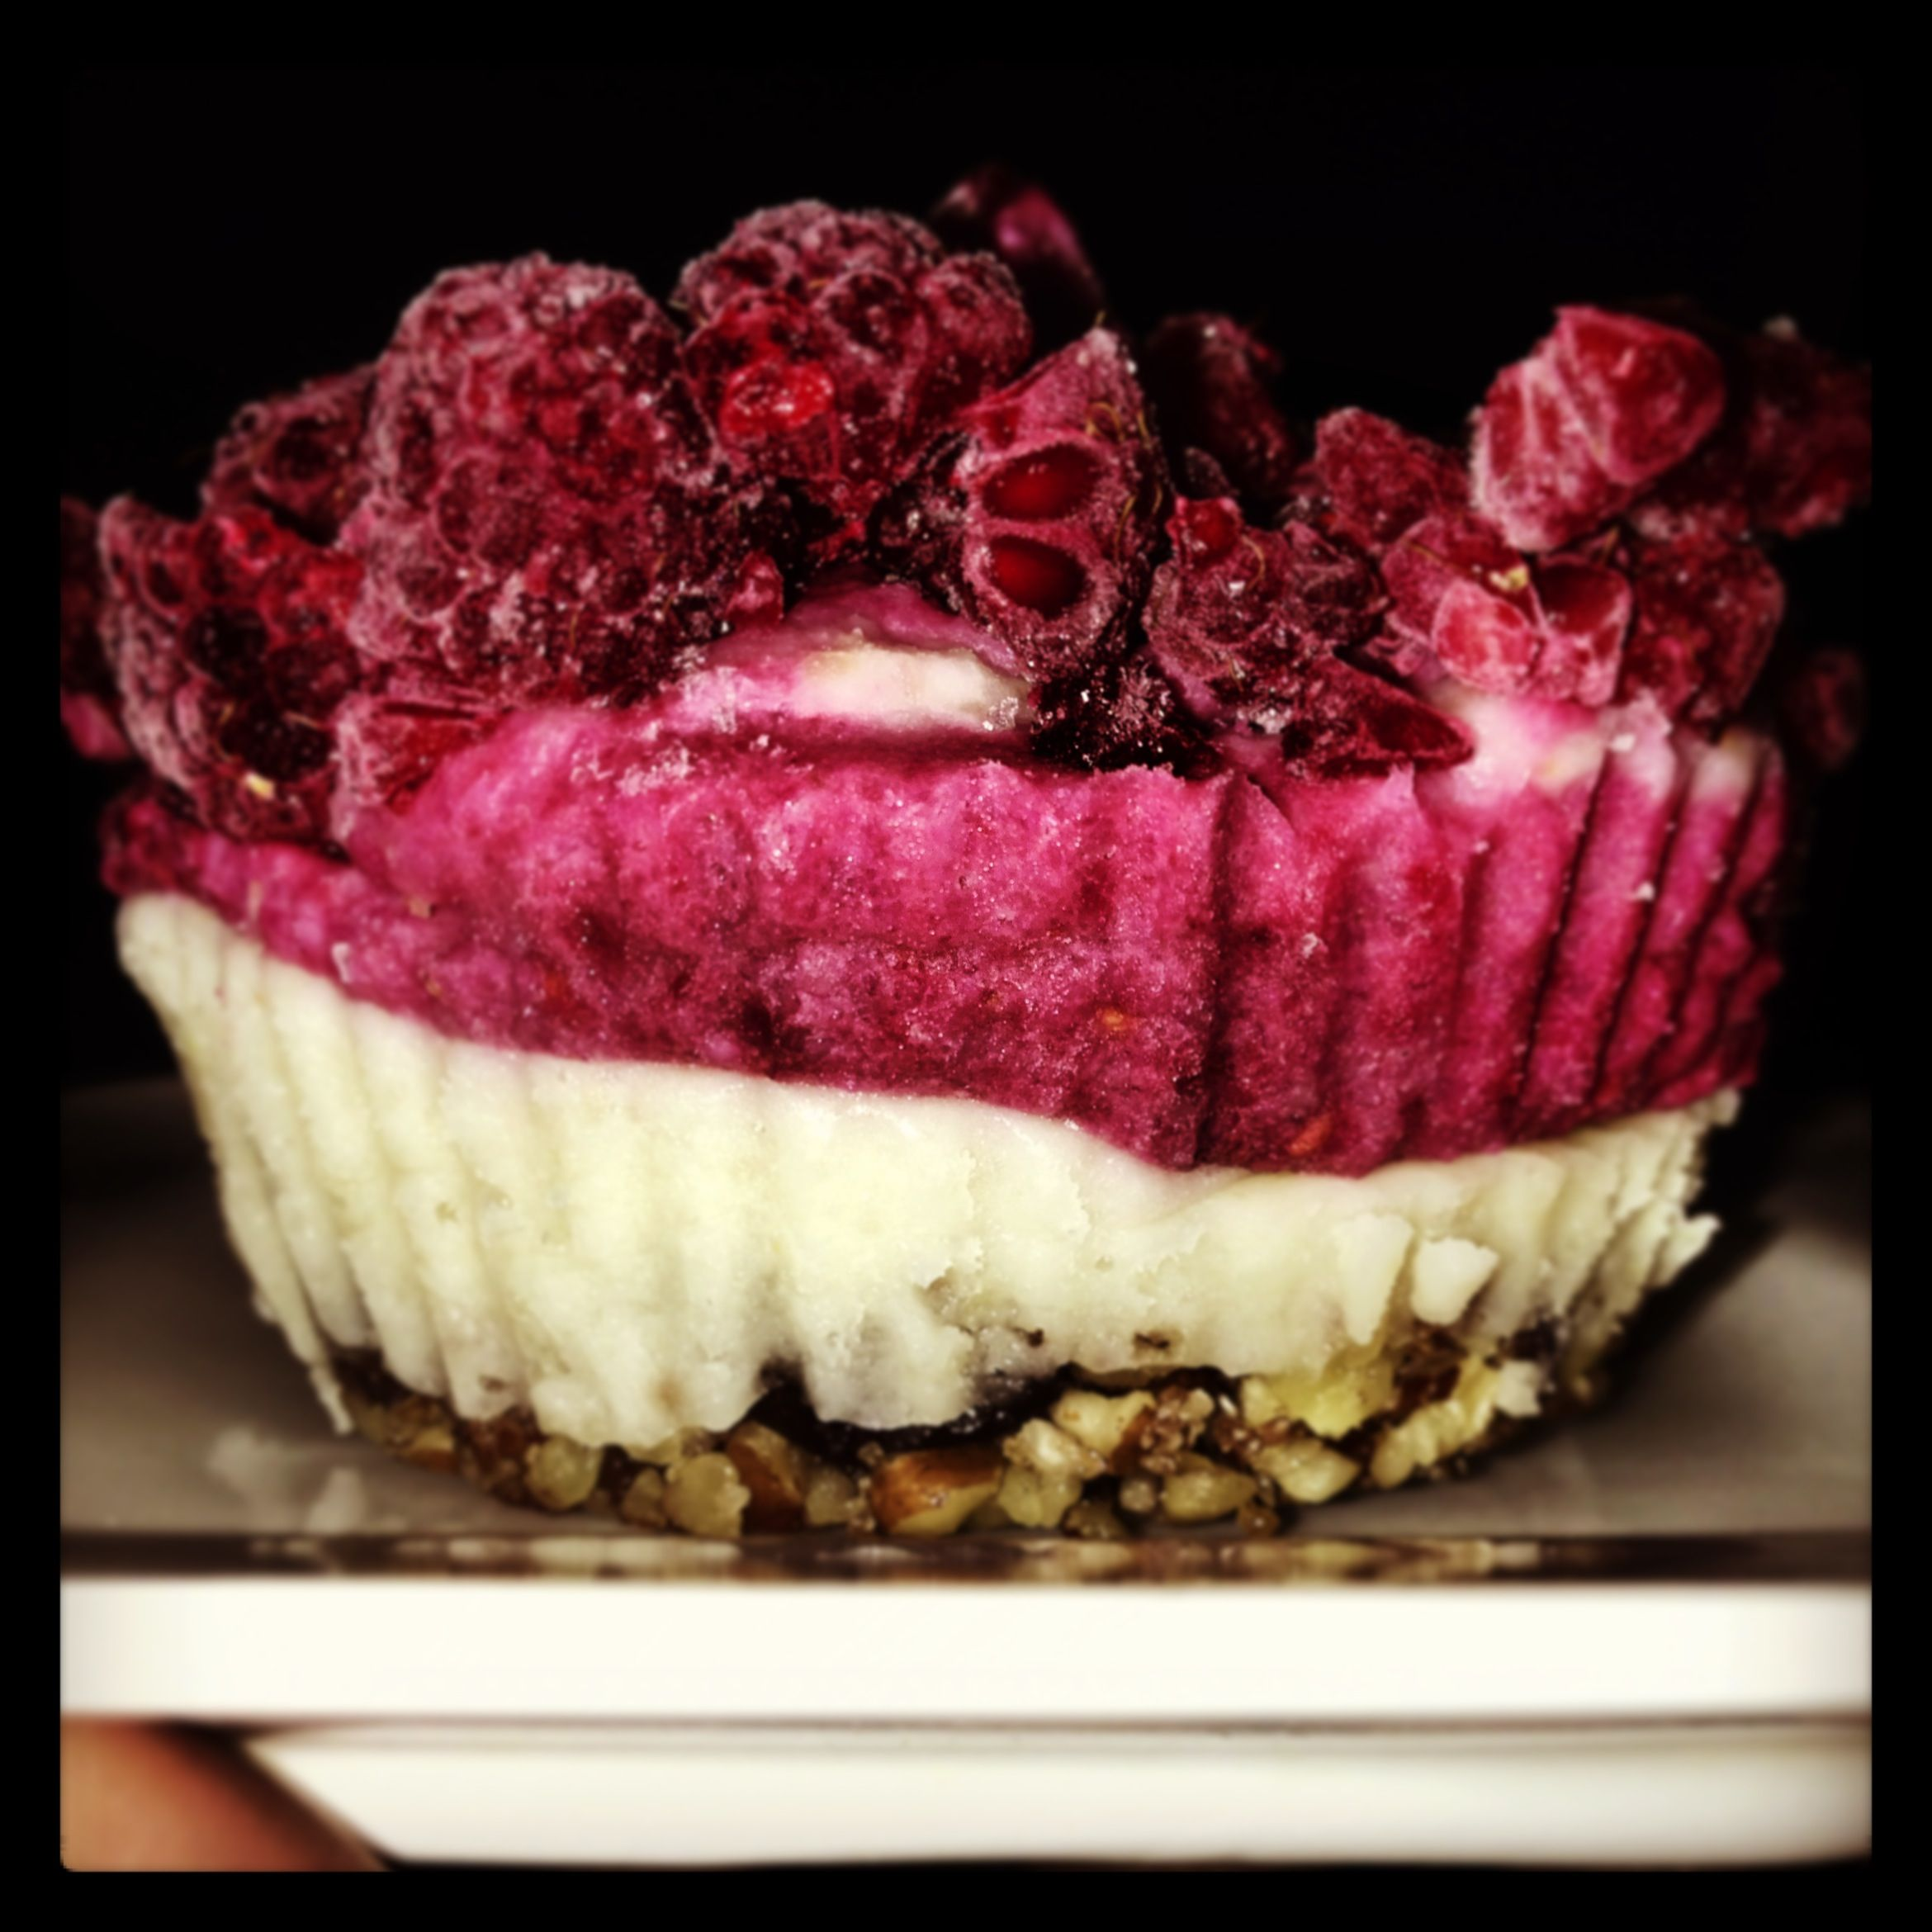 Rawfood raspberry cheesecake. Vegan , glutenfree and sugarfree!